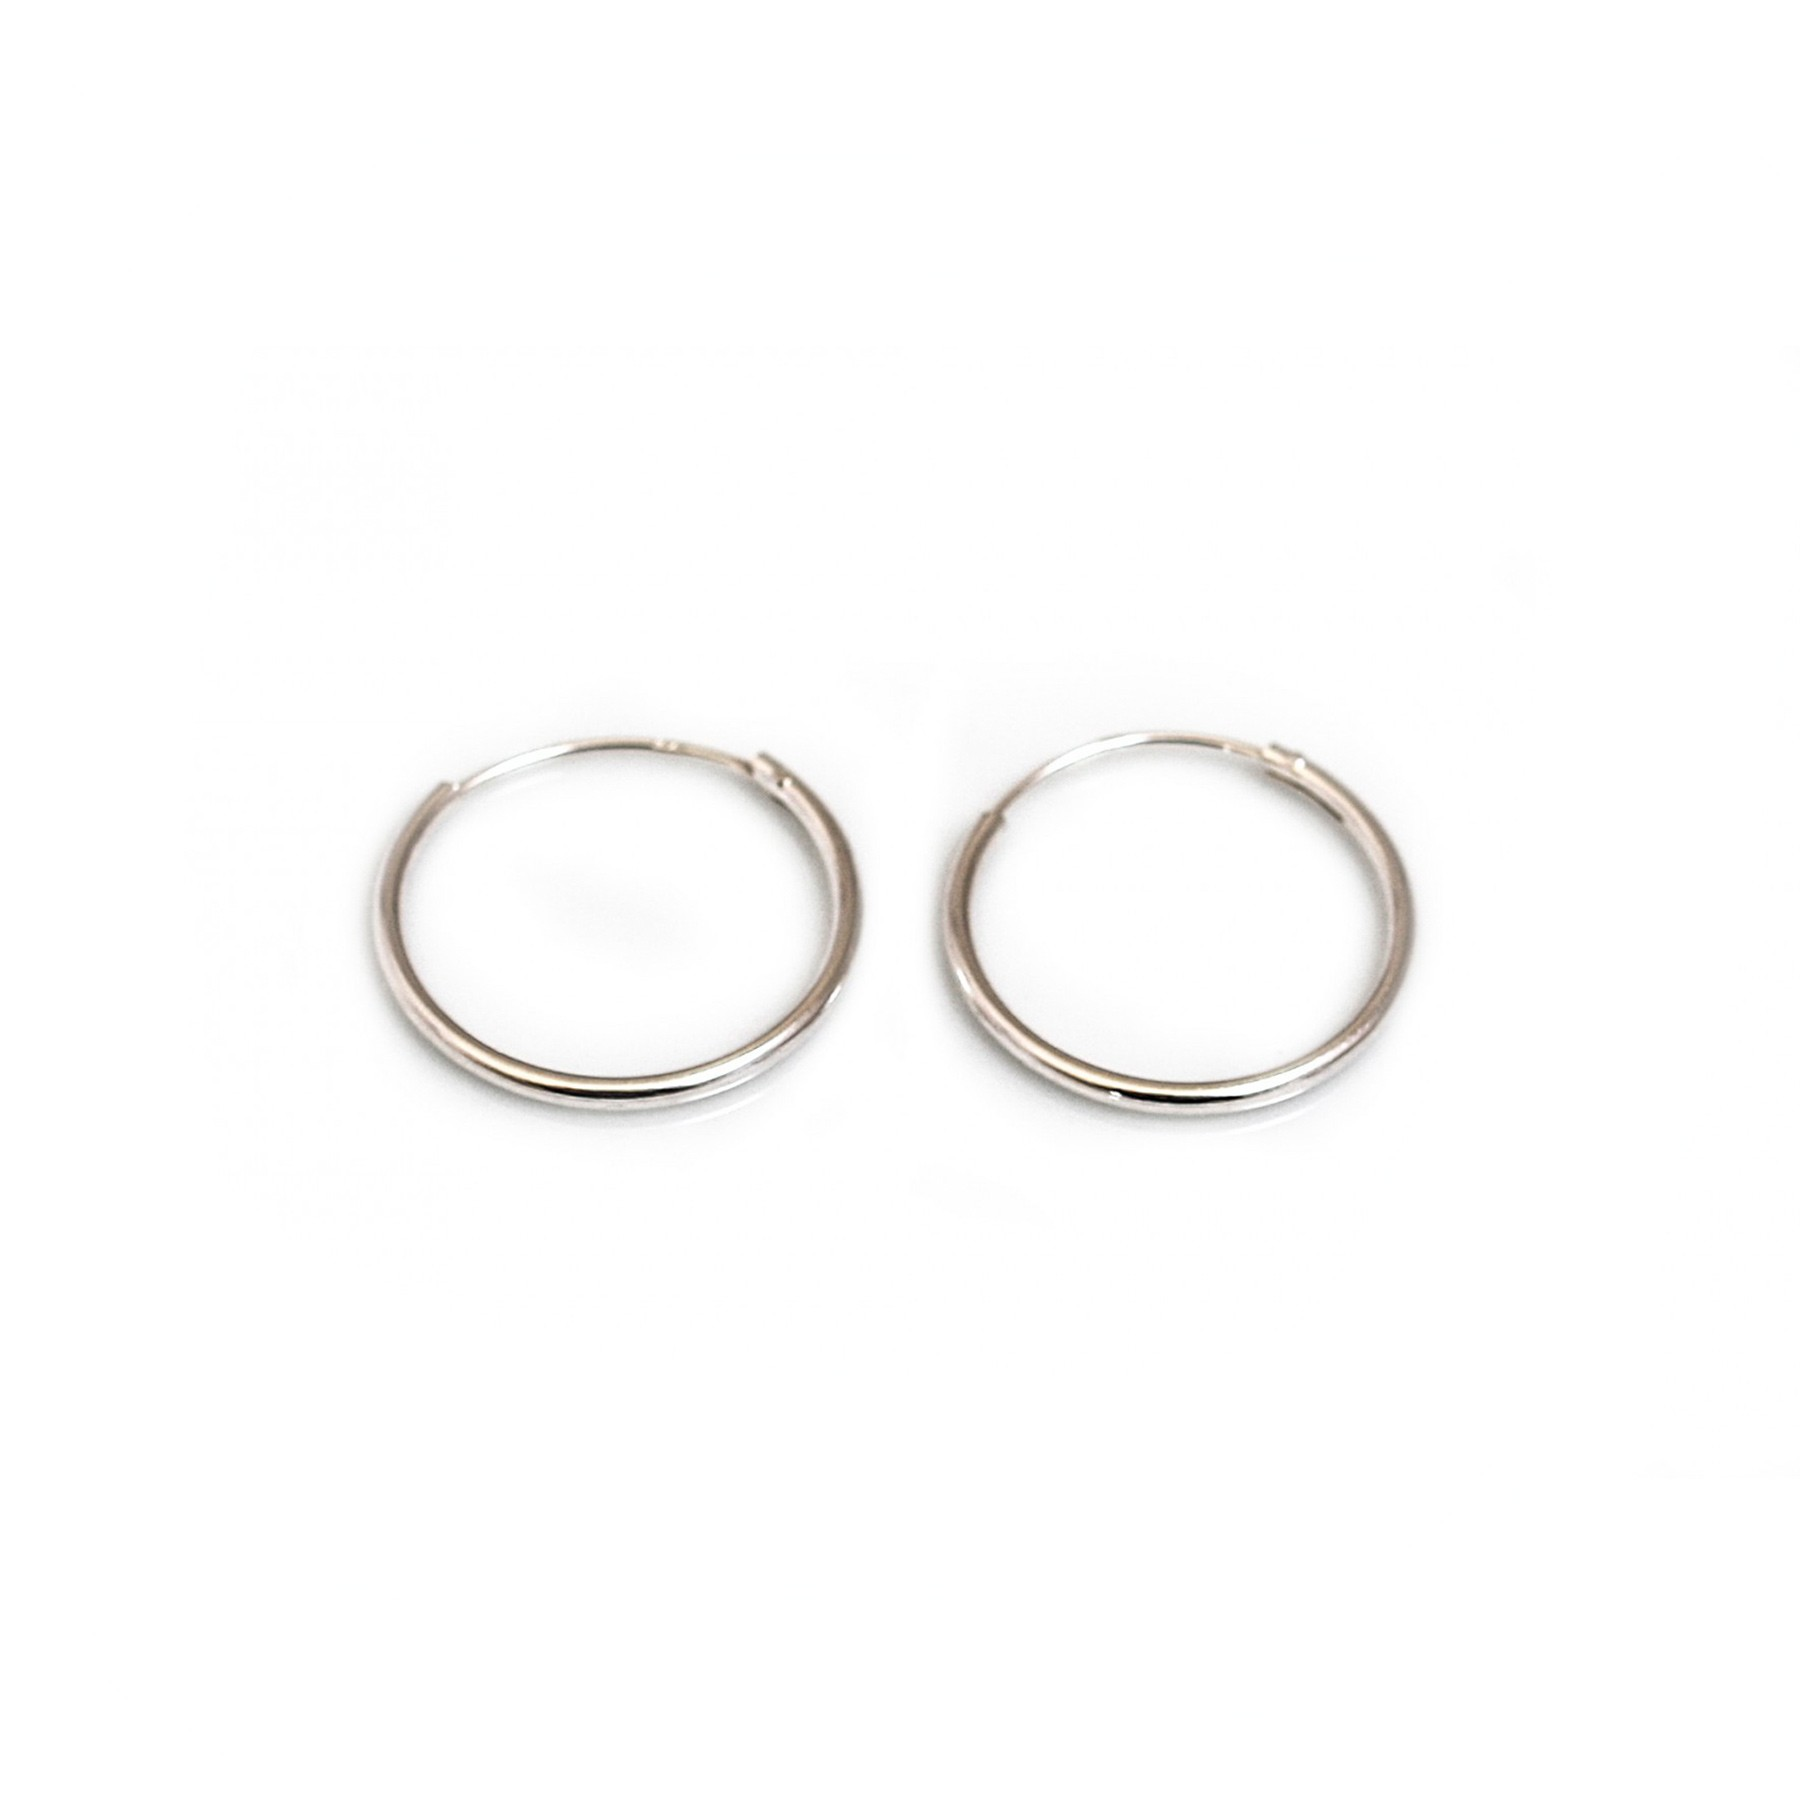 dfch jewellery addthis p sharing sterling silver earrings sidebar hoop